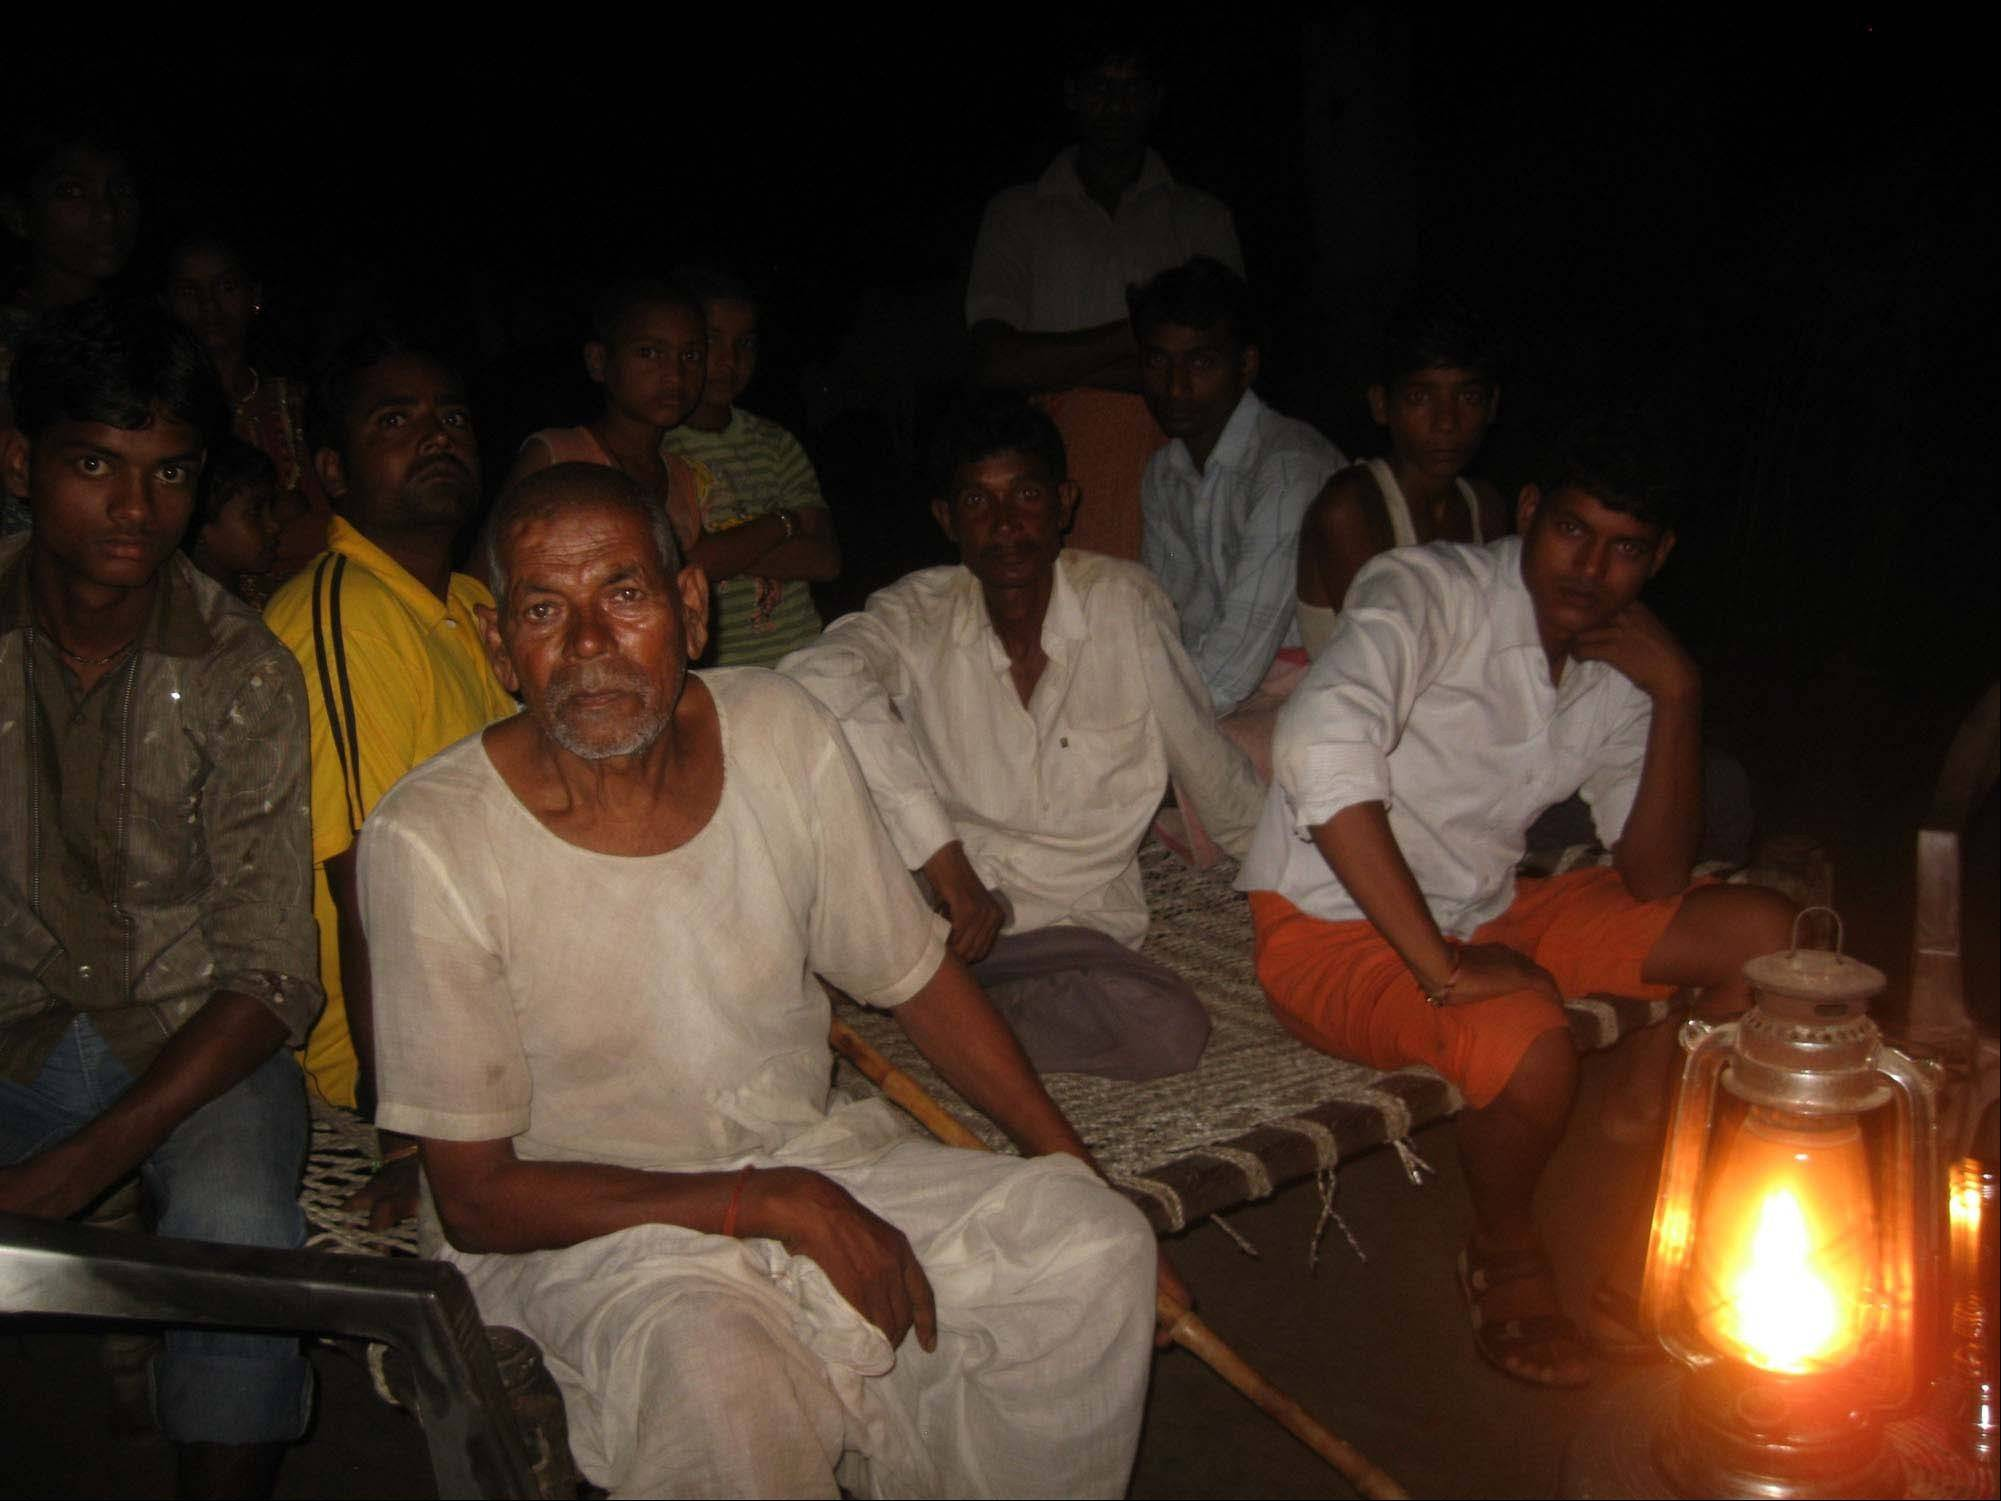 Raja Ram, 65, and others sit on a cot by a kerosene lantern in a riverside village called Kenwasia. The village, in the official files, has been given electricity, but only 30 homes out of 700 homes have electricity connections.